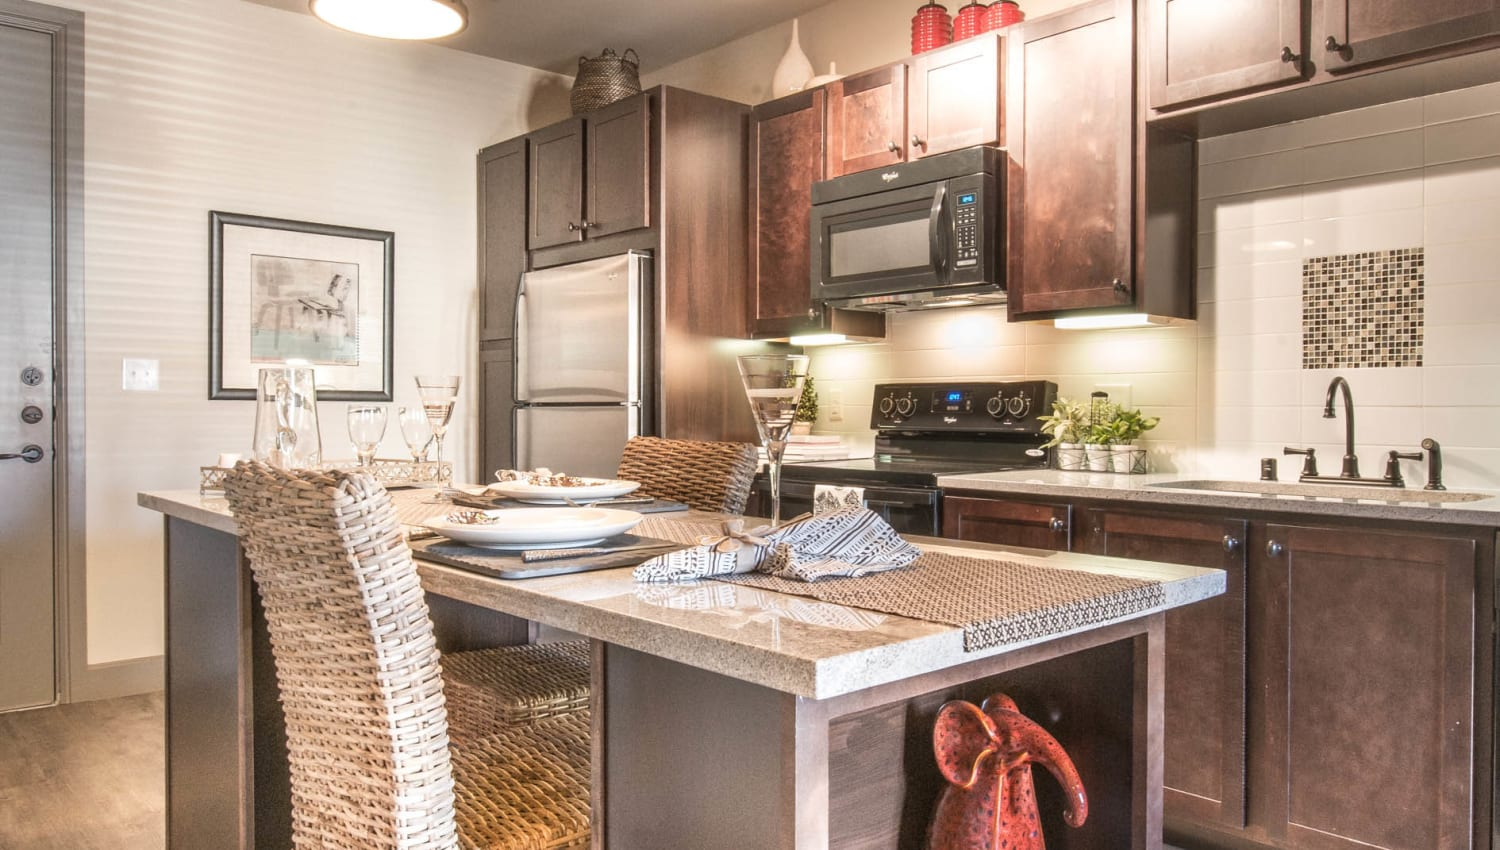 Seating area at the island in a model home's kitchen at Union At Carrollton Square in Carrollton, Texas